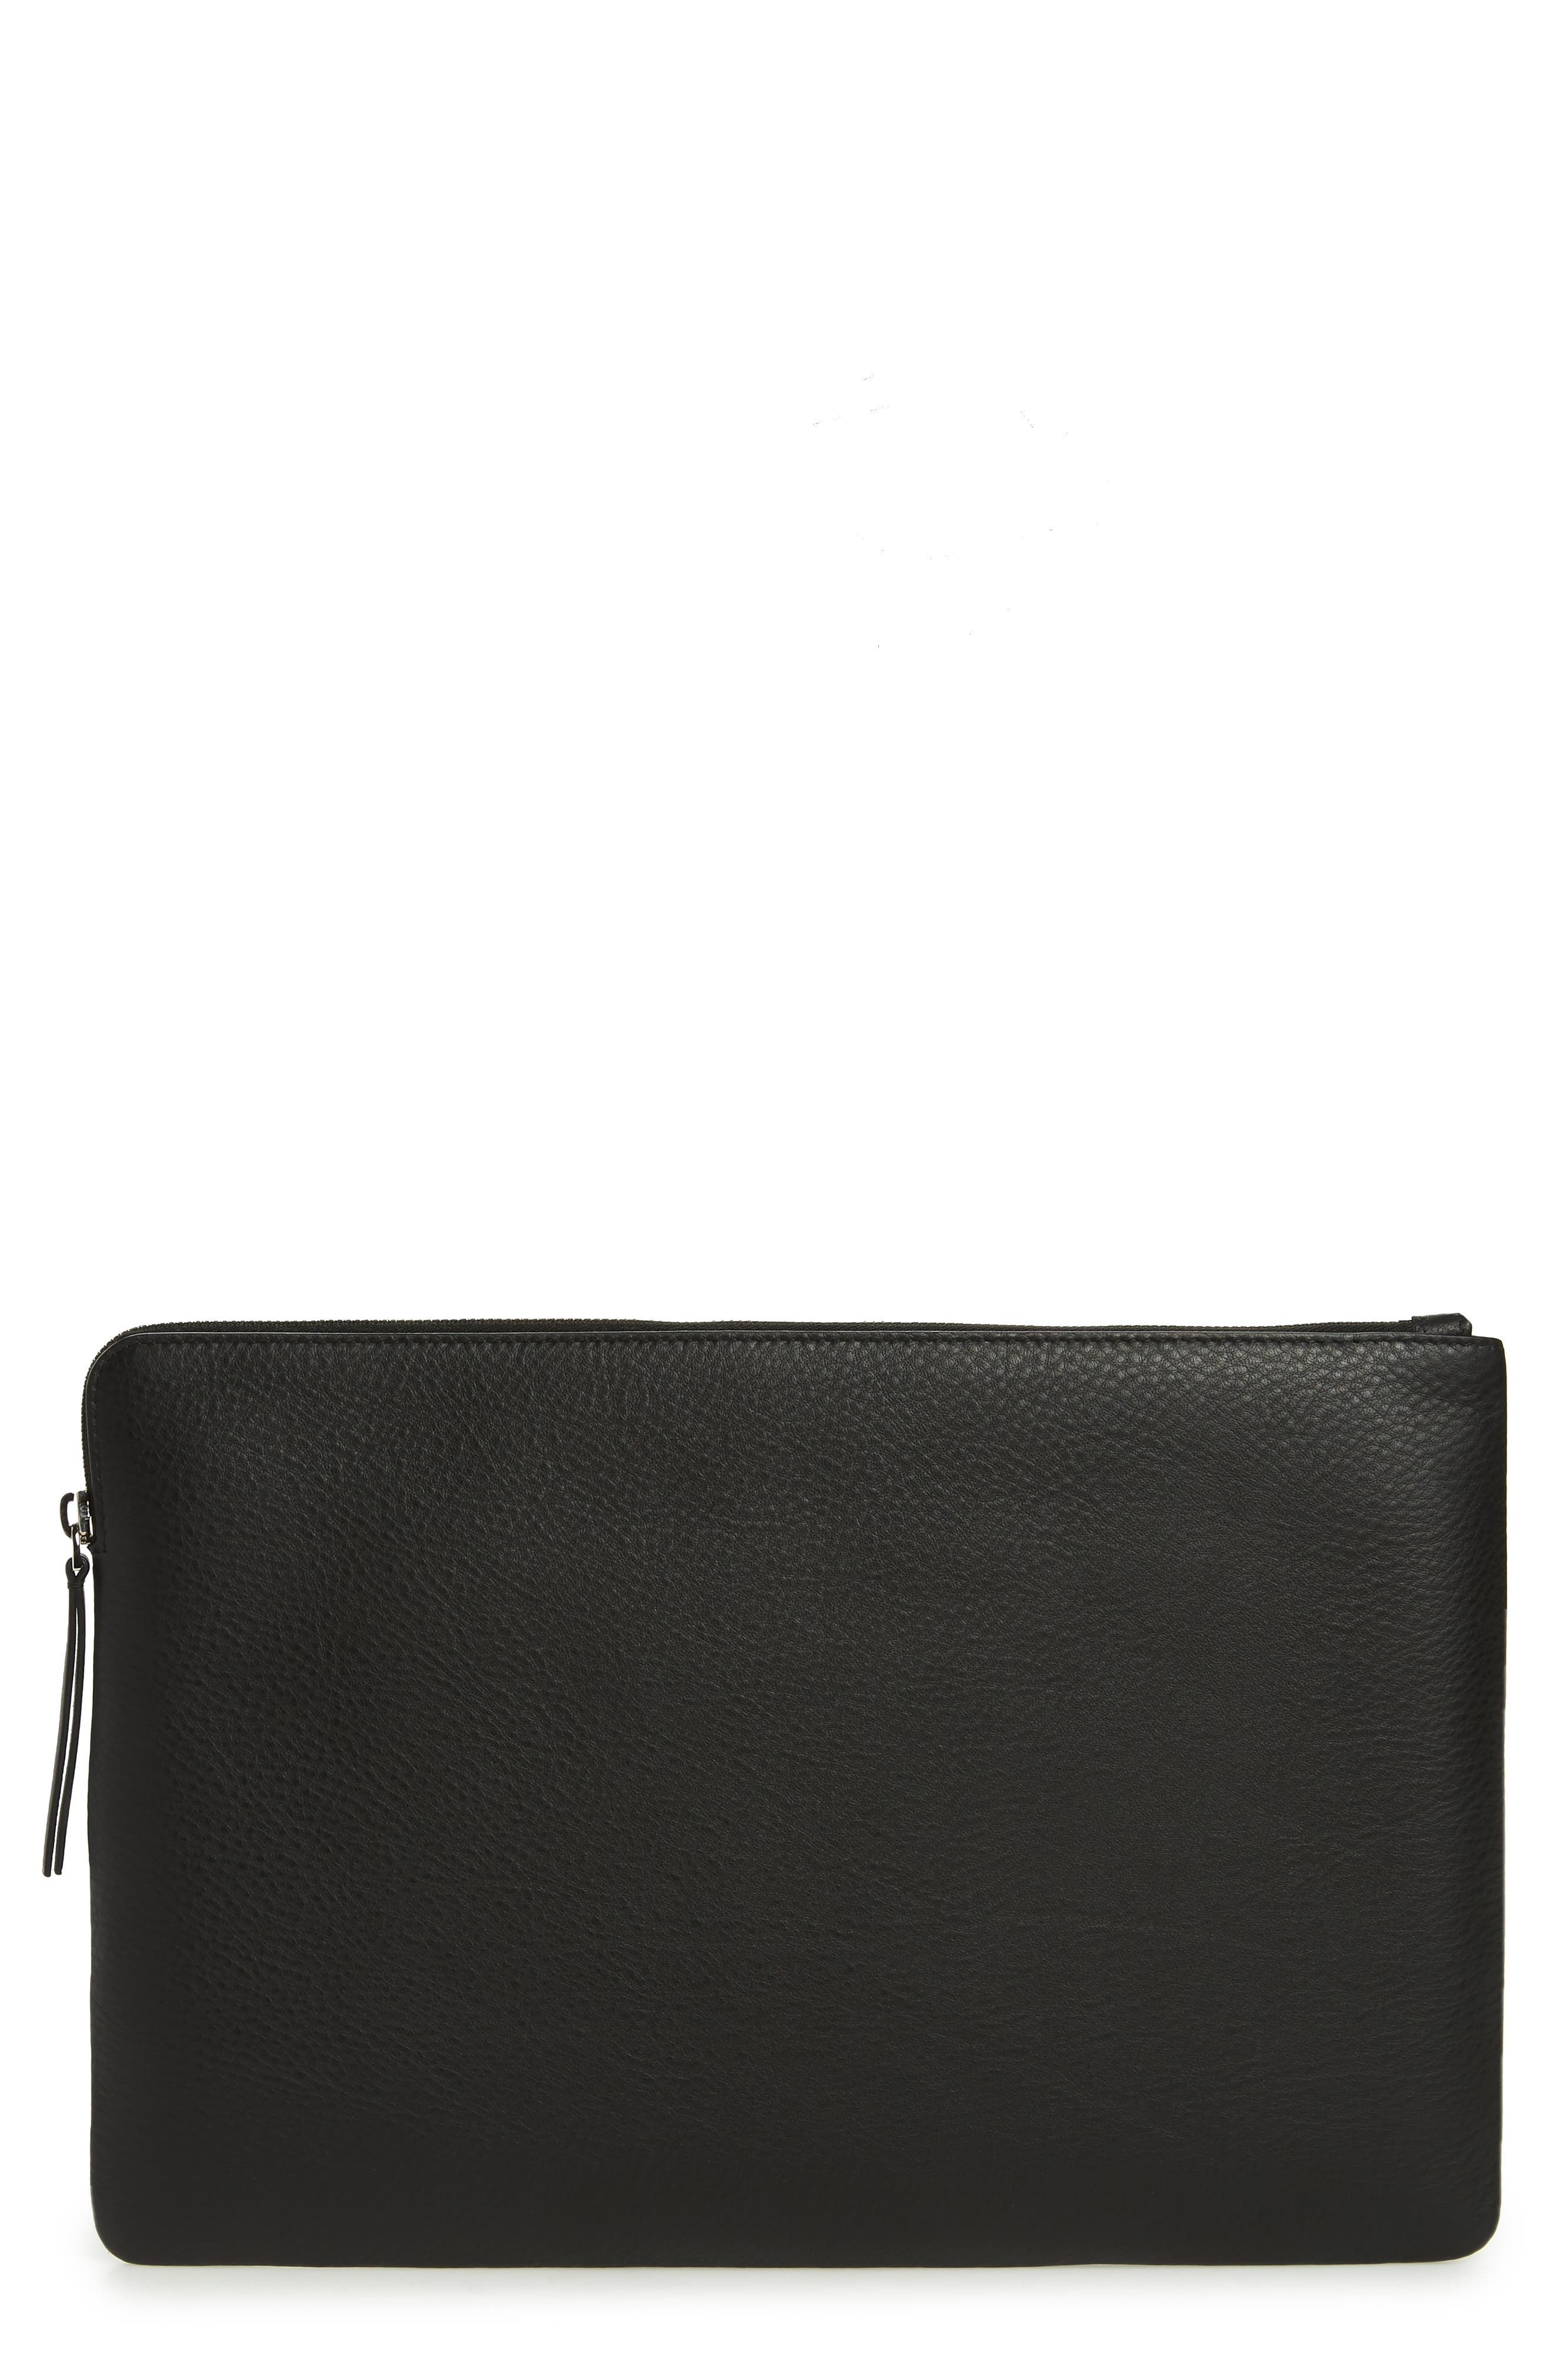 Balencia Large Everyday Leather Pouch,                         Main,                         color, NOIR/ BLANC